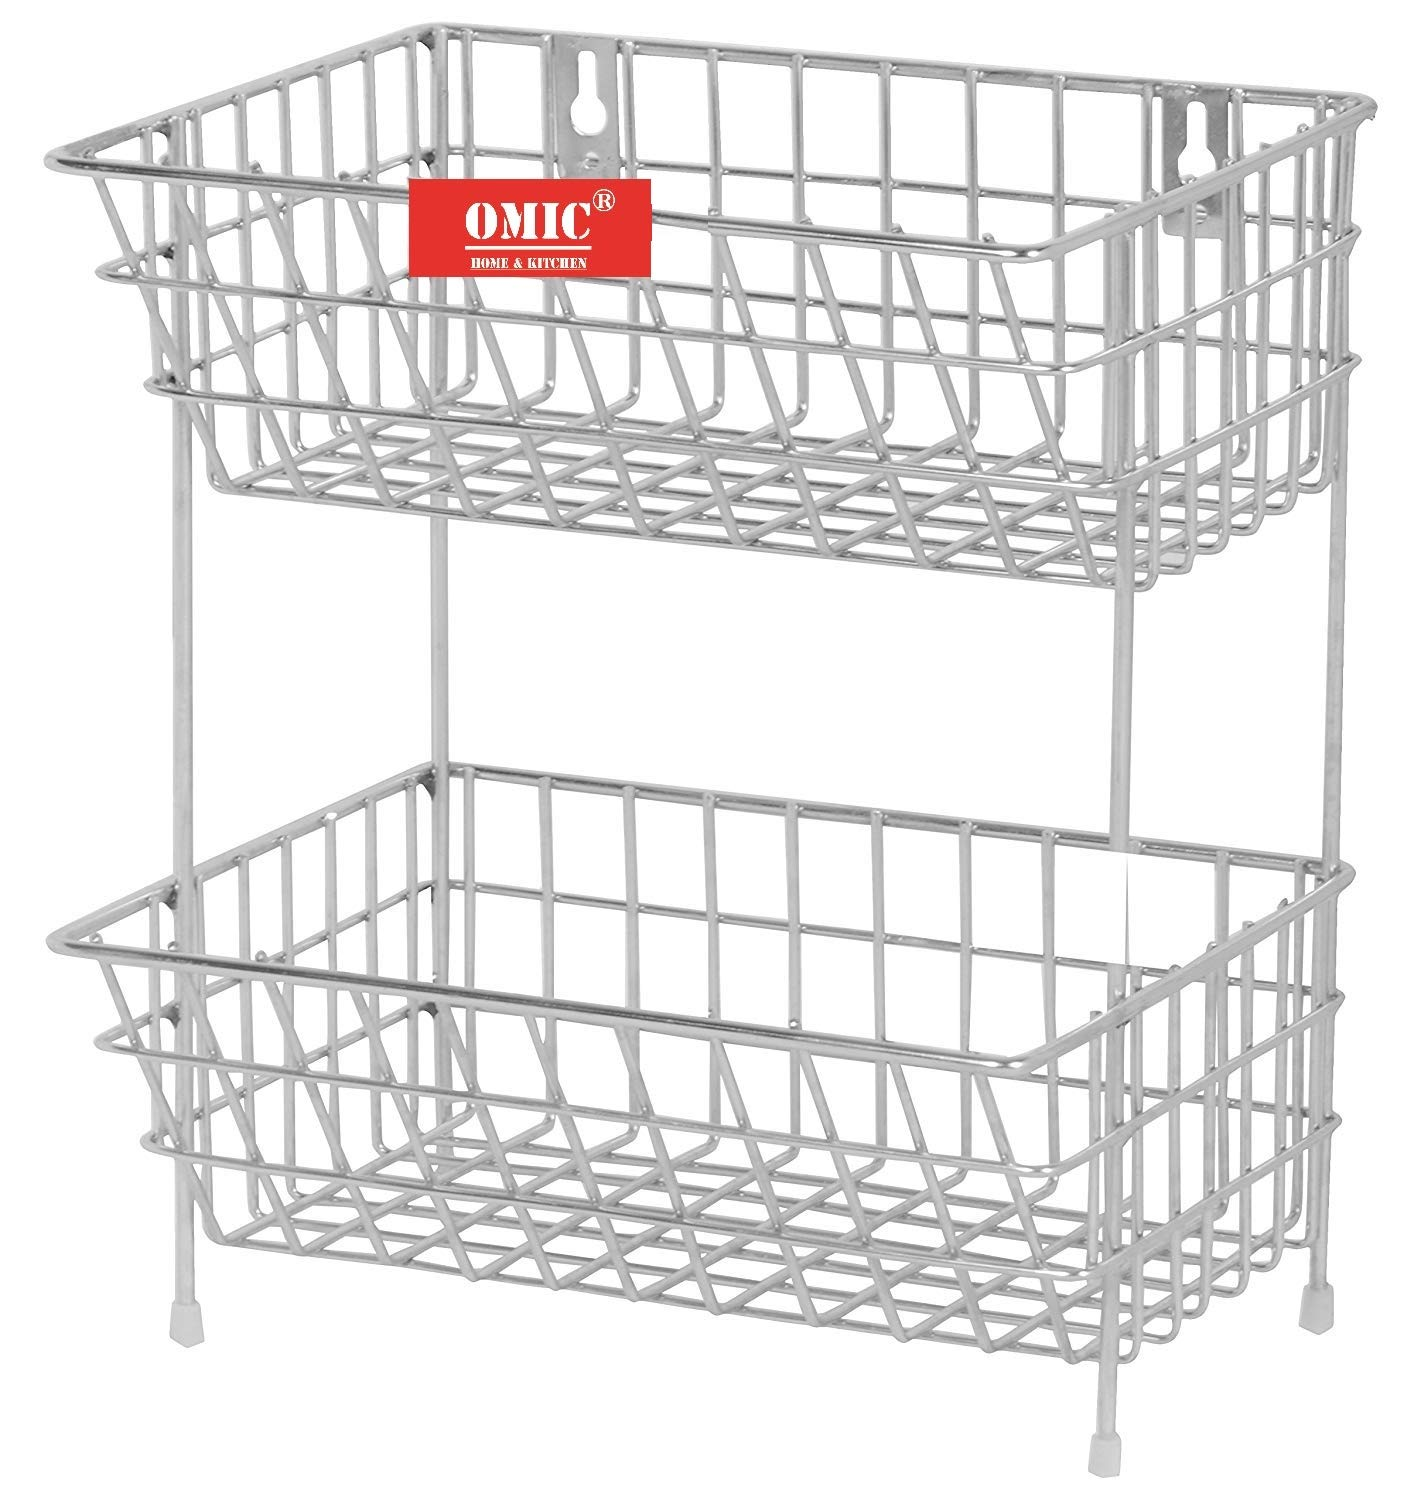 Omic Stainless Steel Fruits & Vegetable Trolley/Basket for Kitchen (Multipurpose Kitchen Storage Shelf Rack) (2 (Tier) 9x11x14 Inch)